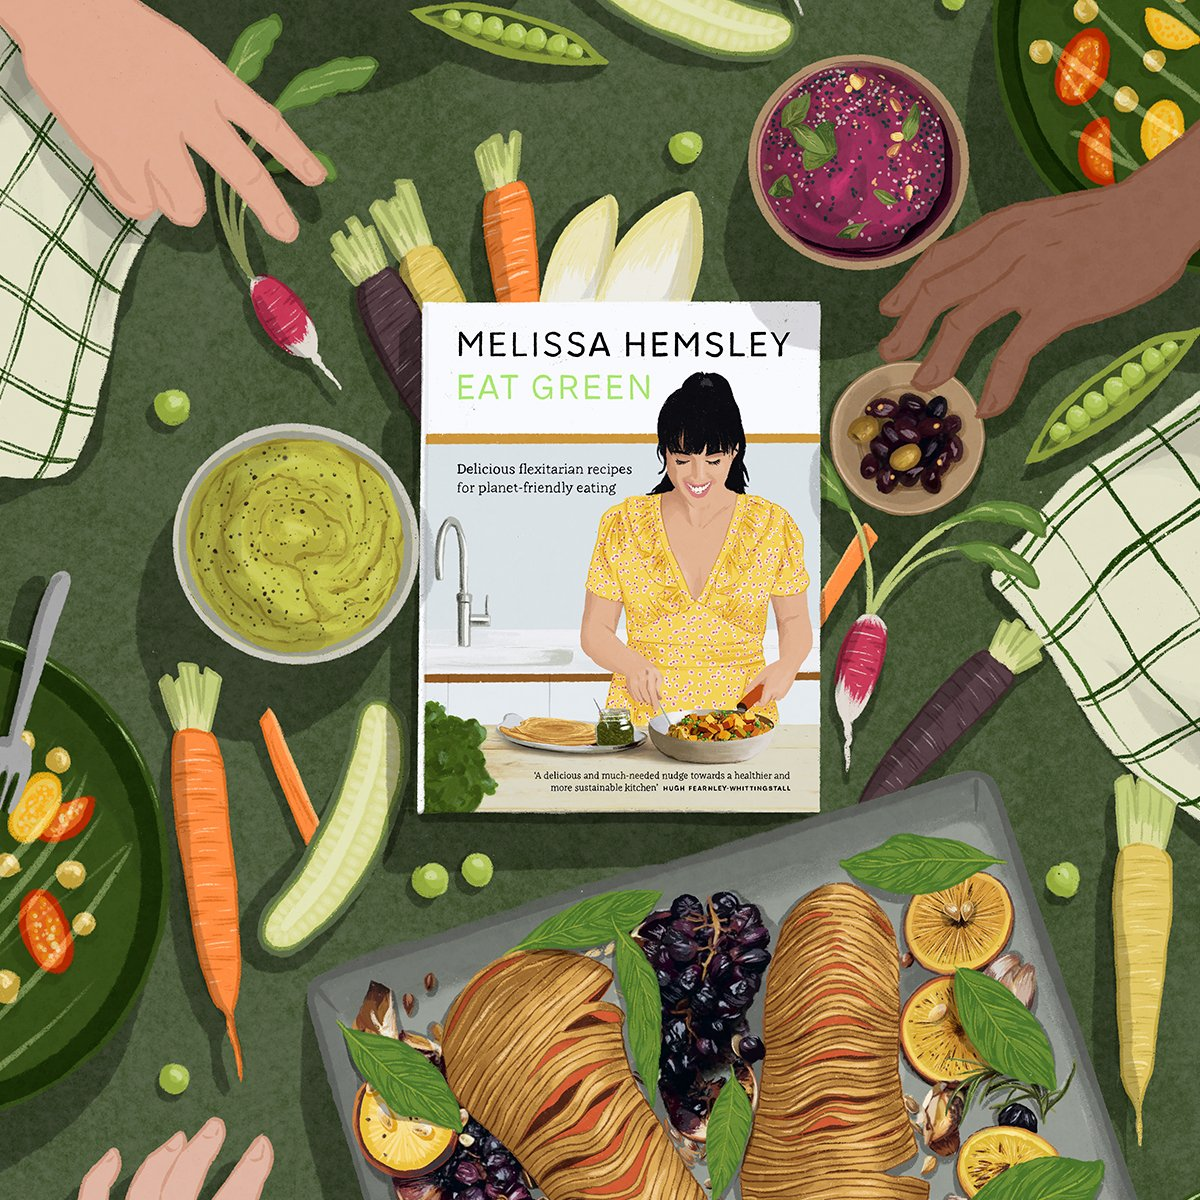 In the second instalment of A Home-Cooked Summer, green-eating champion @MelissaHemsley shares 5 planet-friendly, lockdown-ready recipes, including a fresh take on a classic summer salad and some mouthwatering tahini cookies: https://t.co/3kuqzejtTY https://t.co/hkipAkDH0e